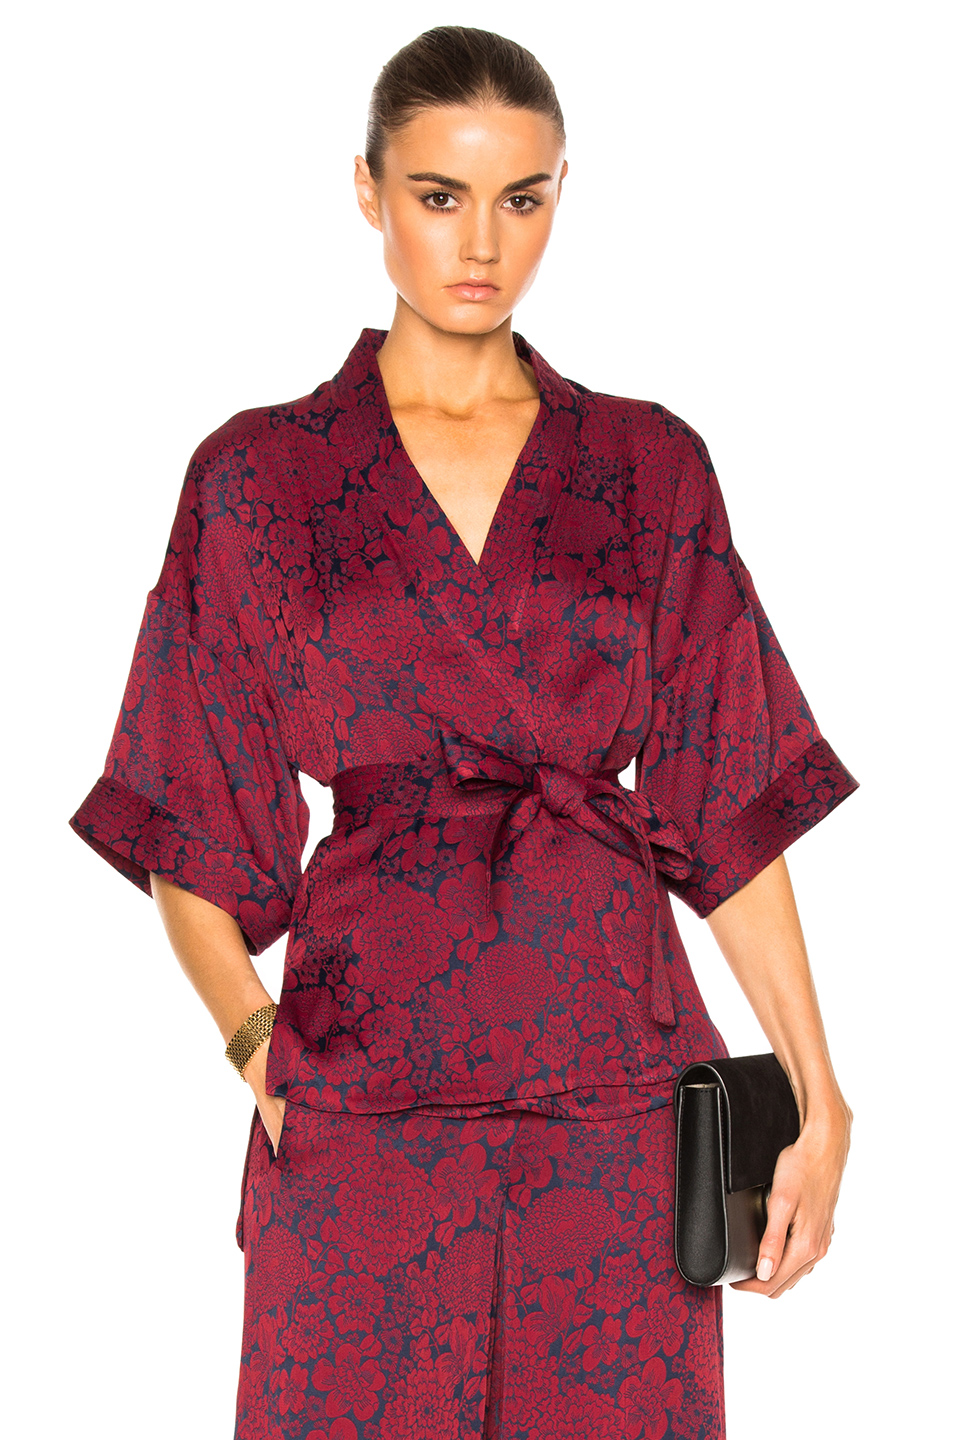 Satin blouse Erdem buy Satin blouse Erdem internet shop